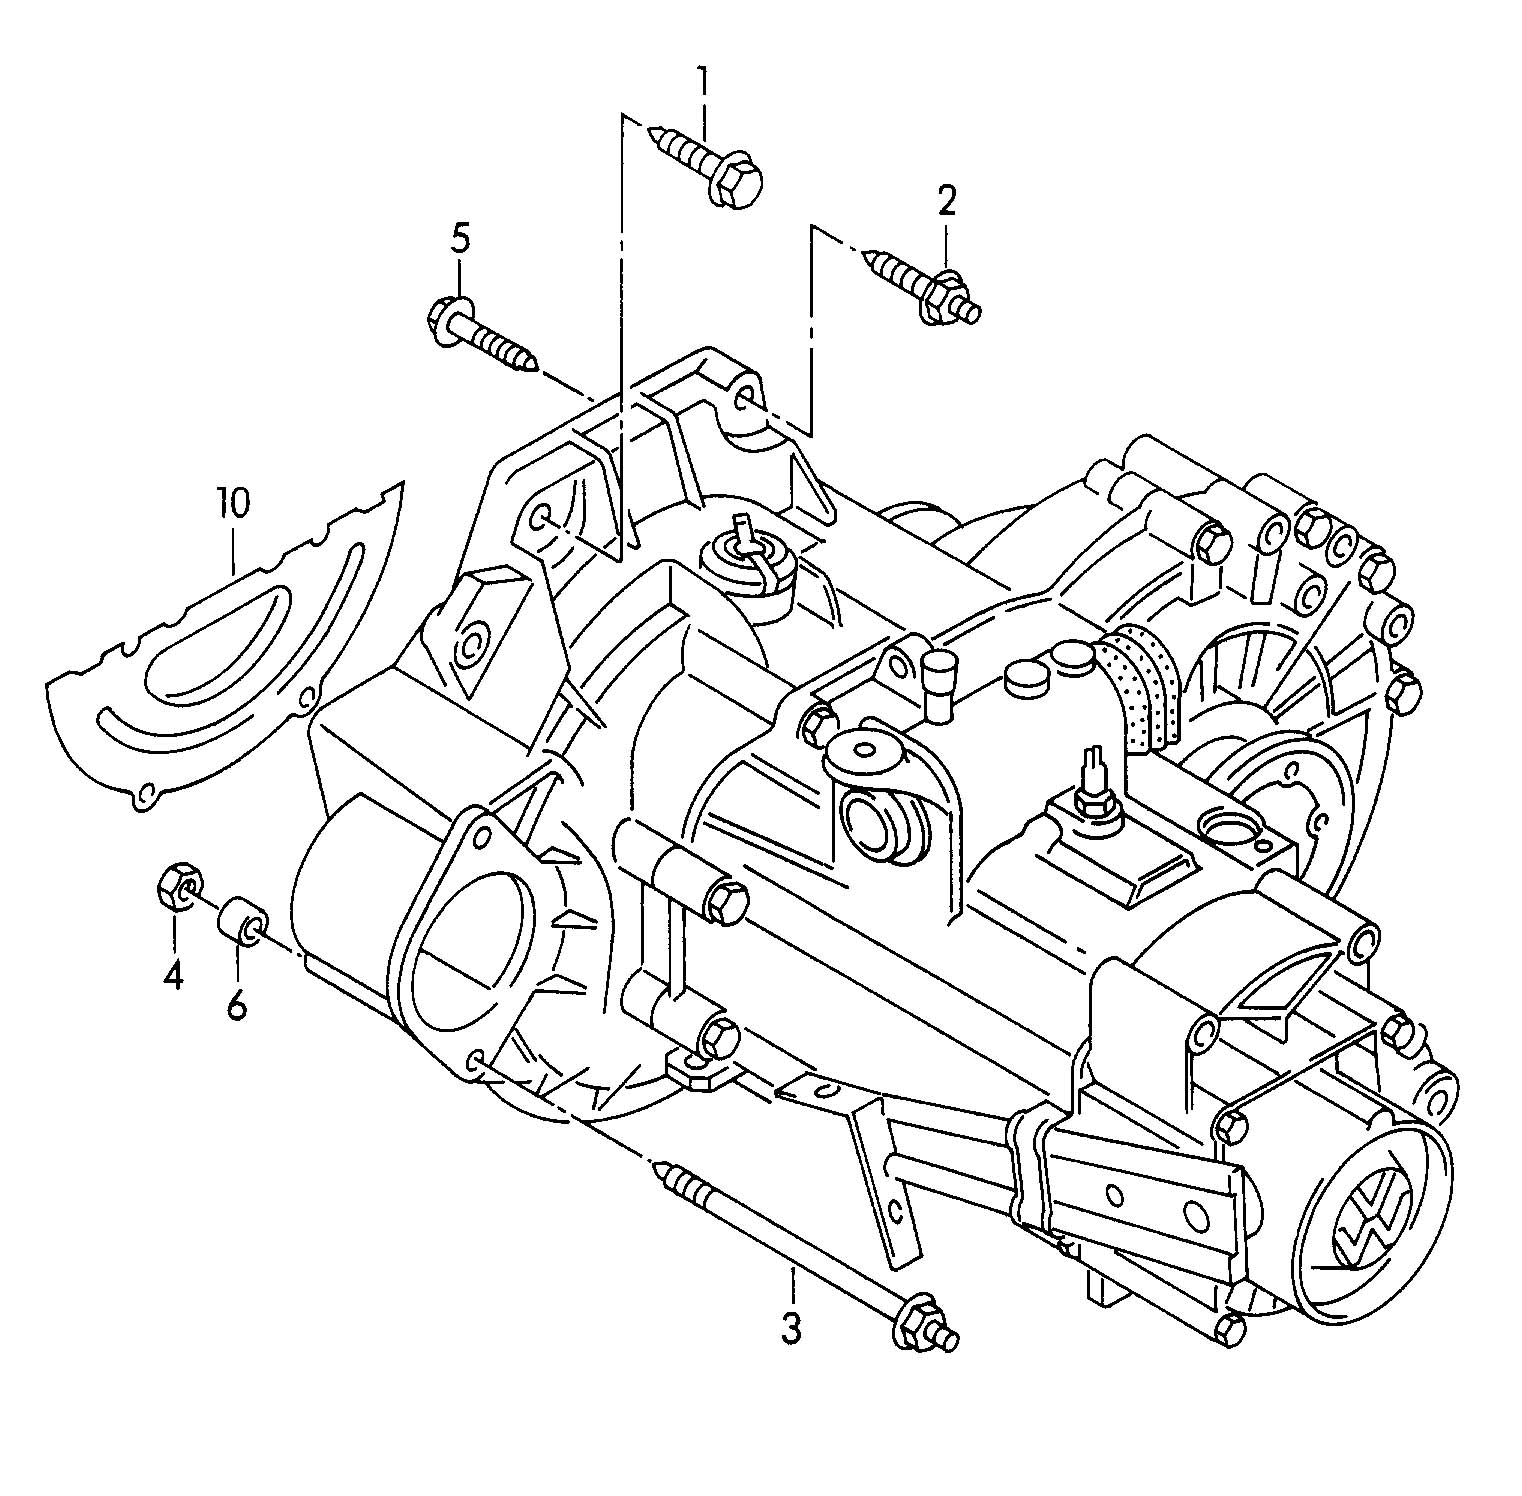 together with vw air cooled engines on vw air cooled engine diagram